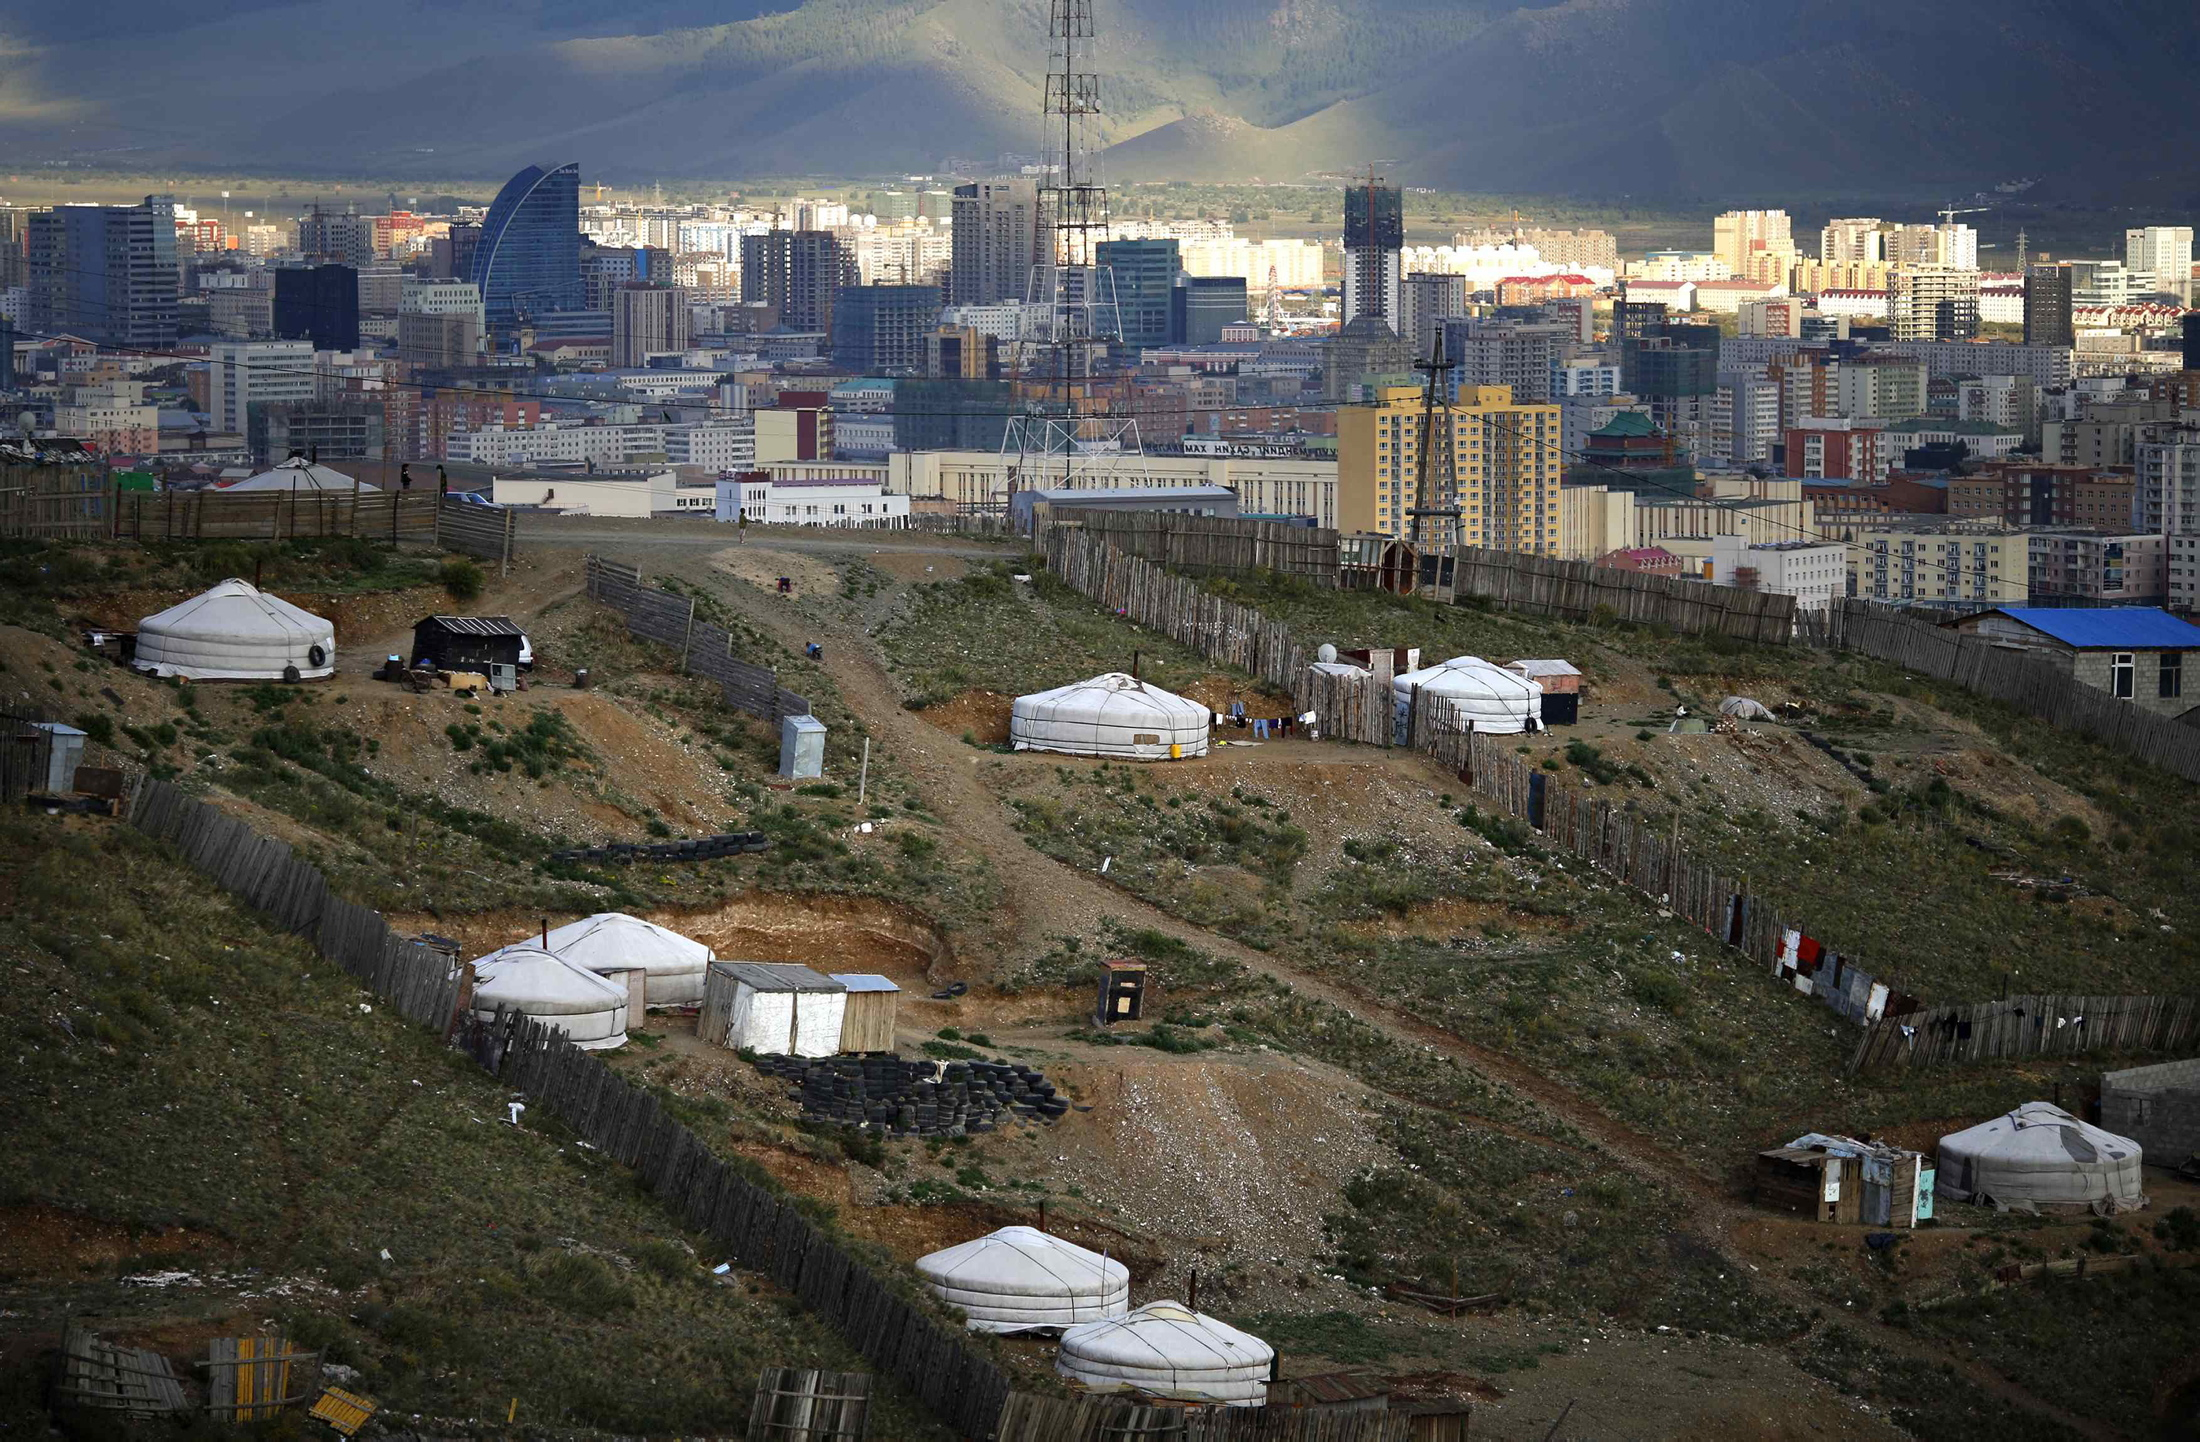 Gers, traditional Mongolian tents, are seen on a hill in an area known as a ger district in Ulan Bator June 26, 2013. Approximately 60 percent of the population of Ulan Bator live in settlements known as ger districts and in many cases residents have limited access to basic services such as water and sanitation. According to a 2010 National Population Center census, every year between thirty and forty thousand people migrate from the countryside to the capital Ulan Bator. Ger districts in the city have been expanding rapidly in recent years. Mongolia is the world's least densely populated country, with 2.8 million people spread across an area around three times the size of France. (Photo by Carlos Barria/Reuters)